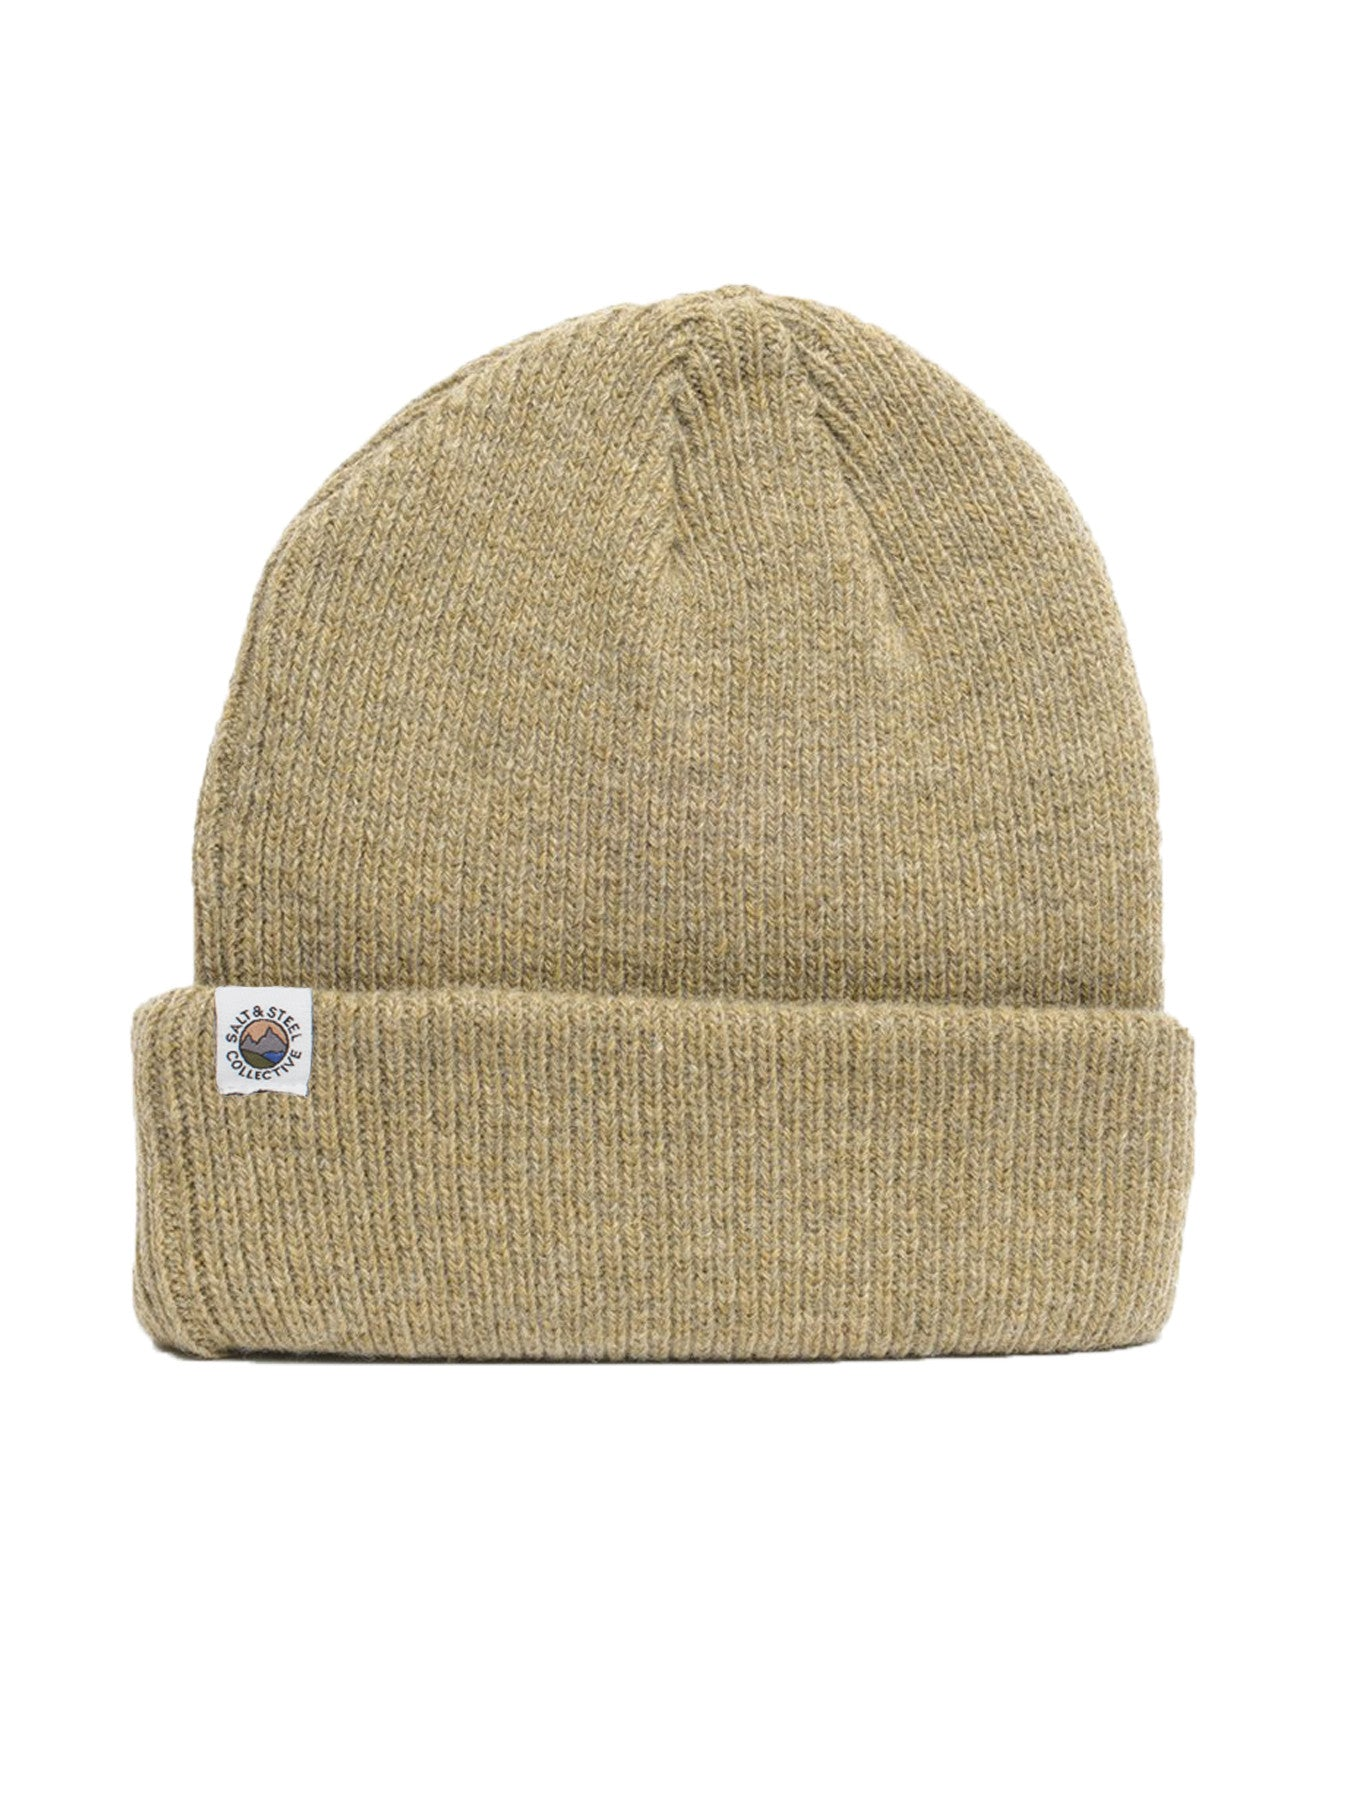 North Wool Beanie    Tan  92f7497c507